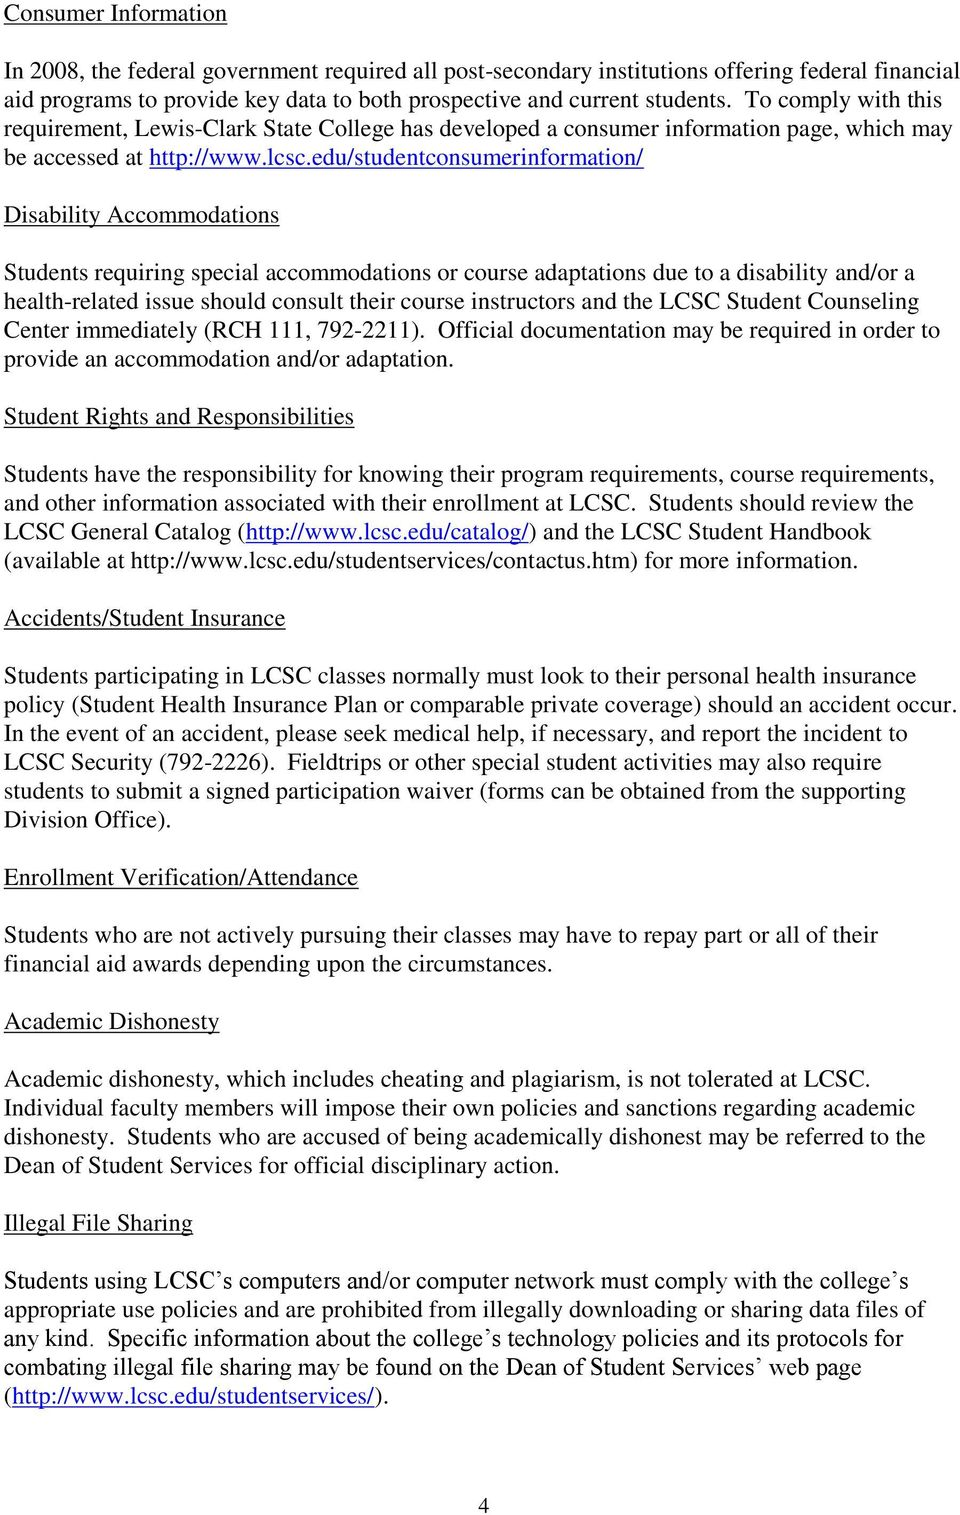 edu/studentconsumerinformation/ Disability Accommodations Students requiring special accommodations or course adaptations due to a disability and/or a health-related issue should consult their course